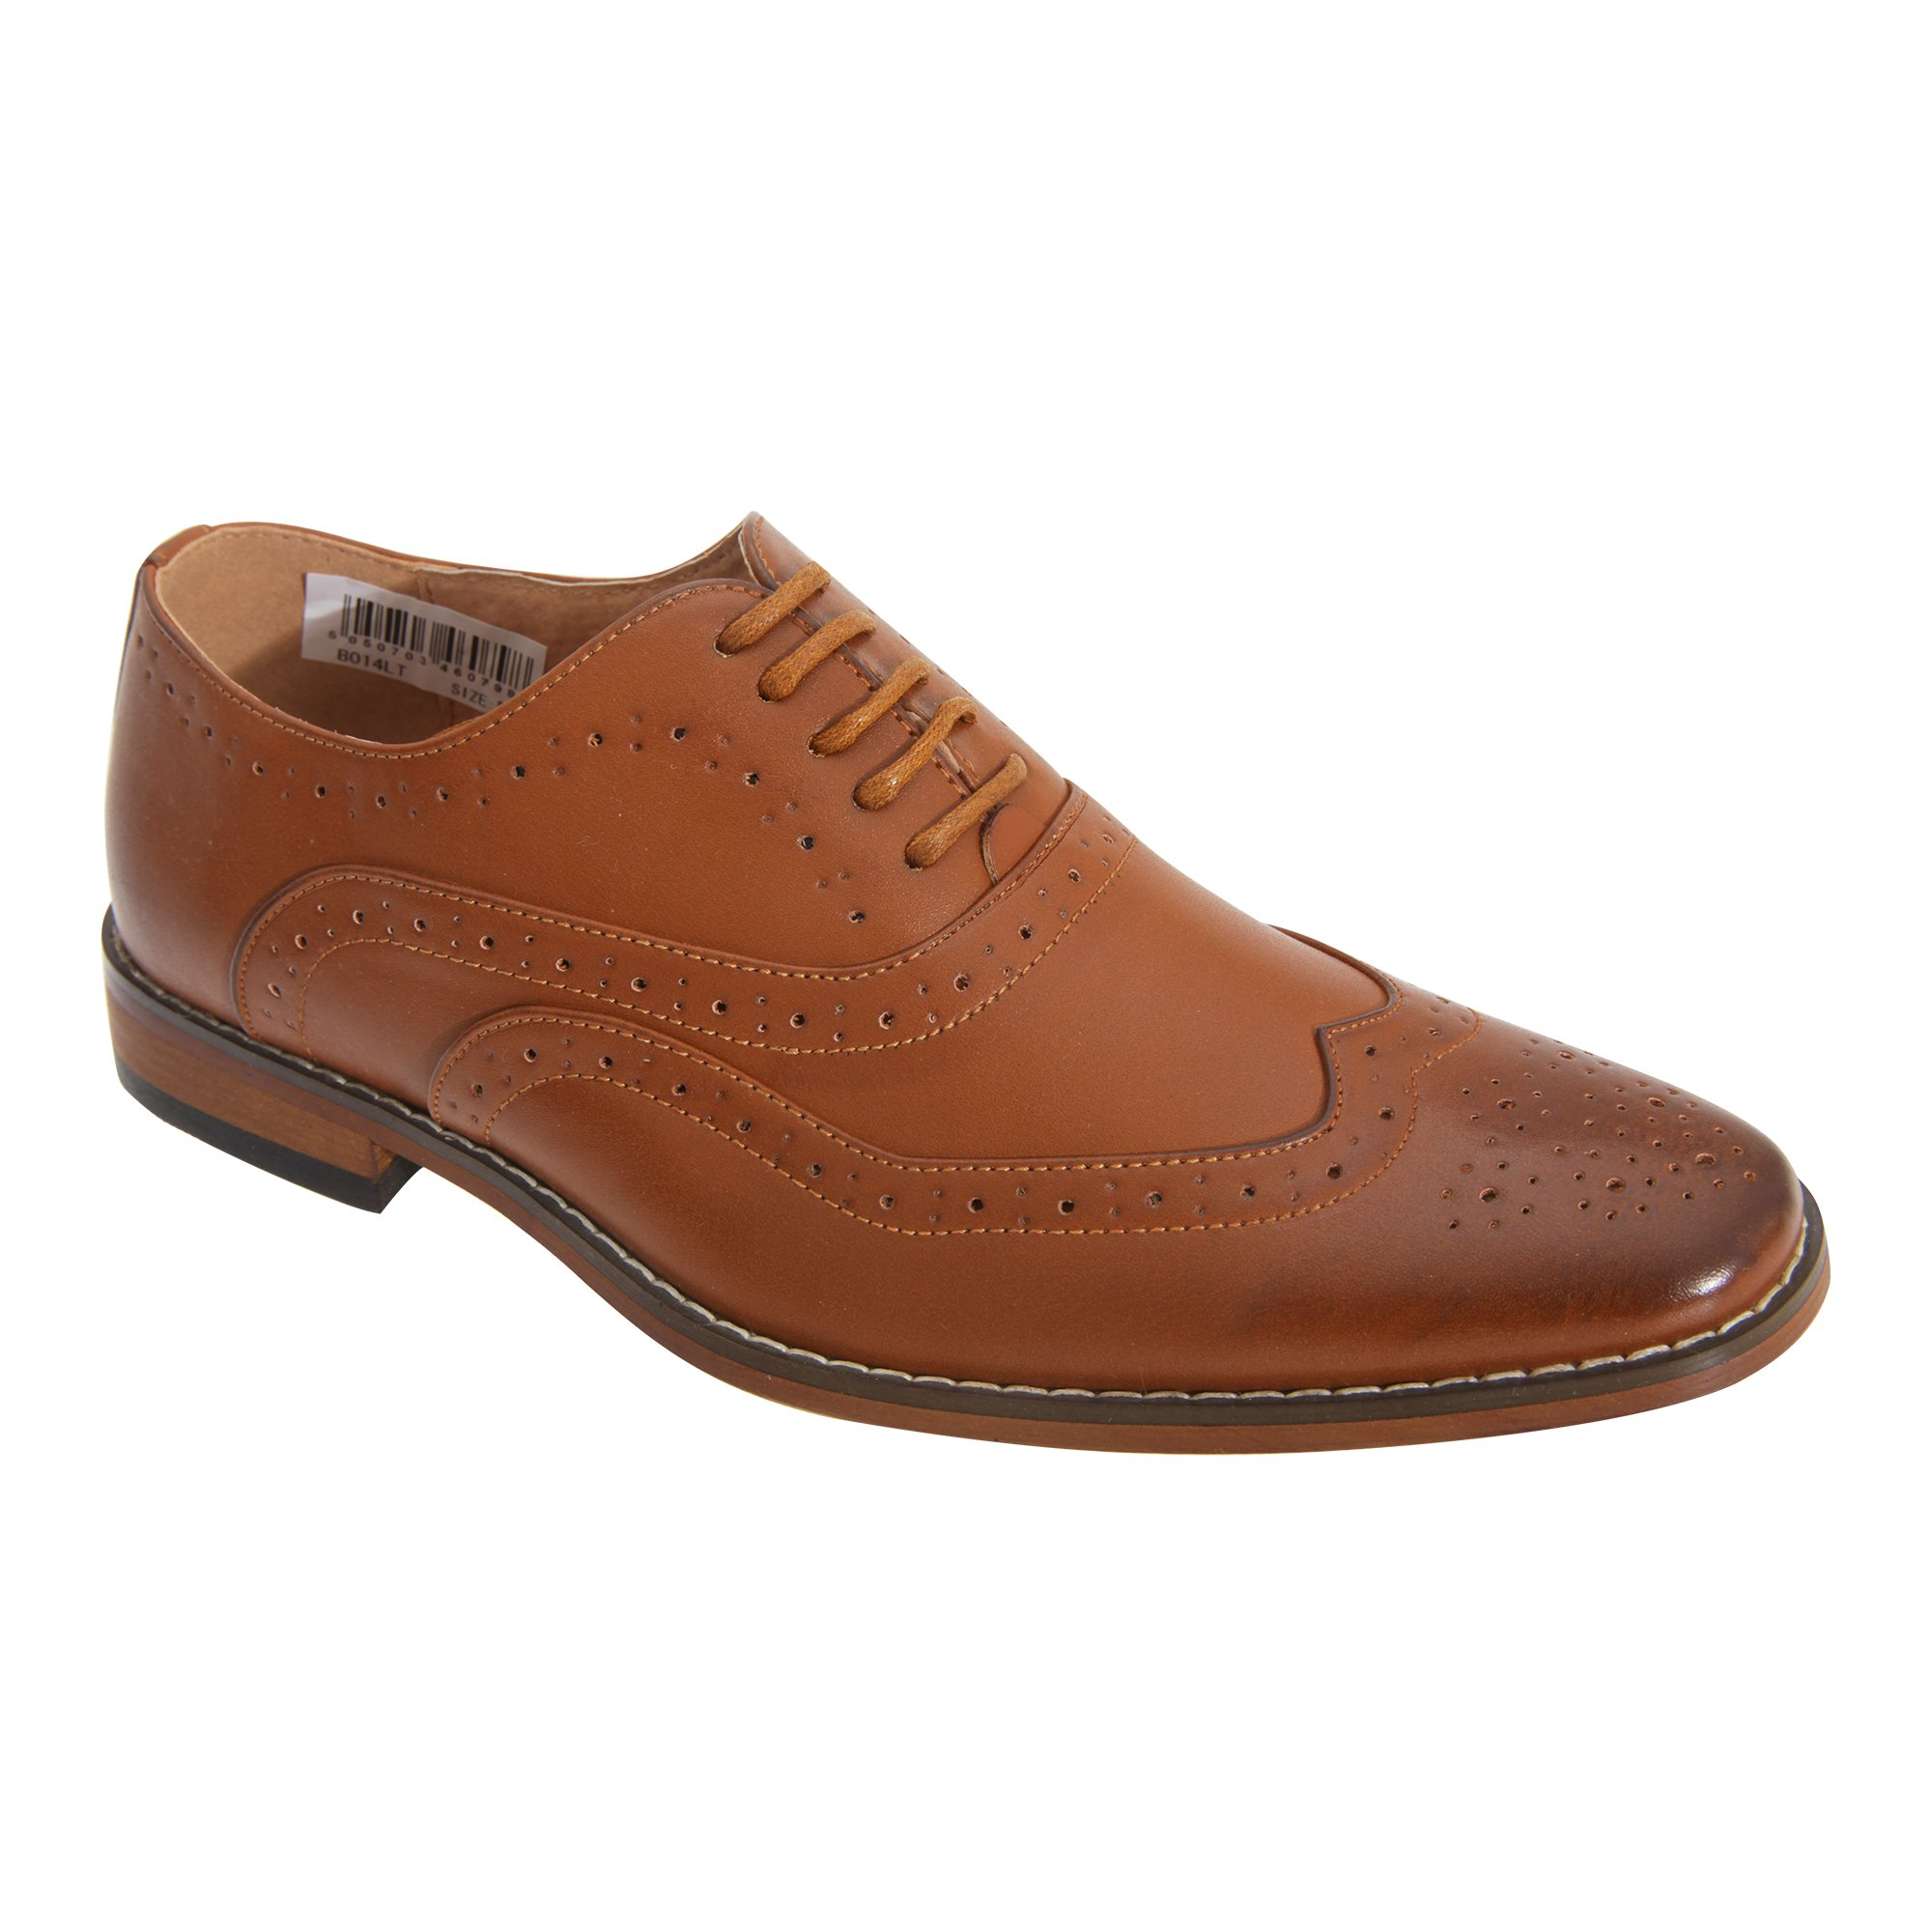 Goor Boys 5 Eyelet Brogue Oxford Shoes (6.5 Youth US) (Tan)